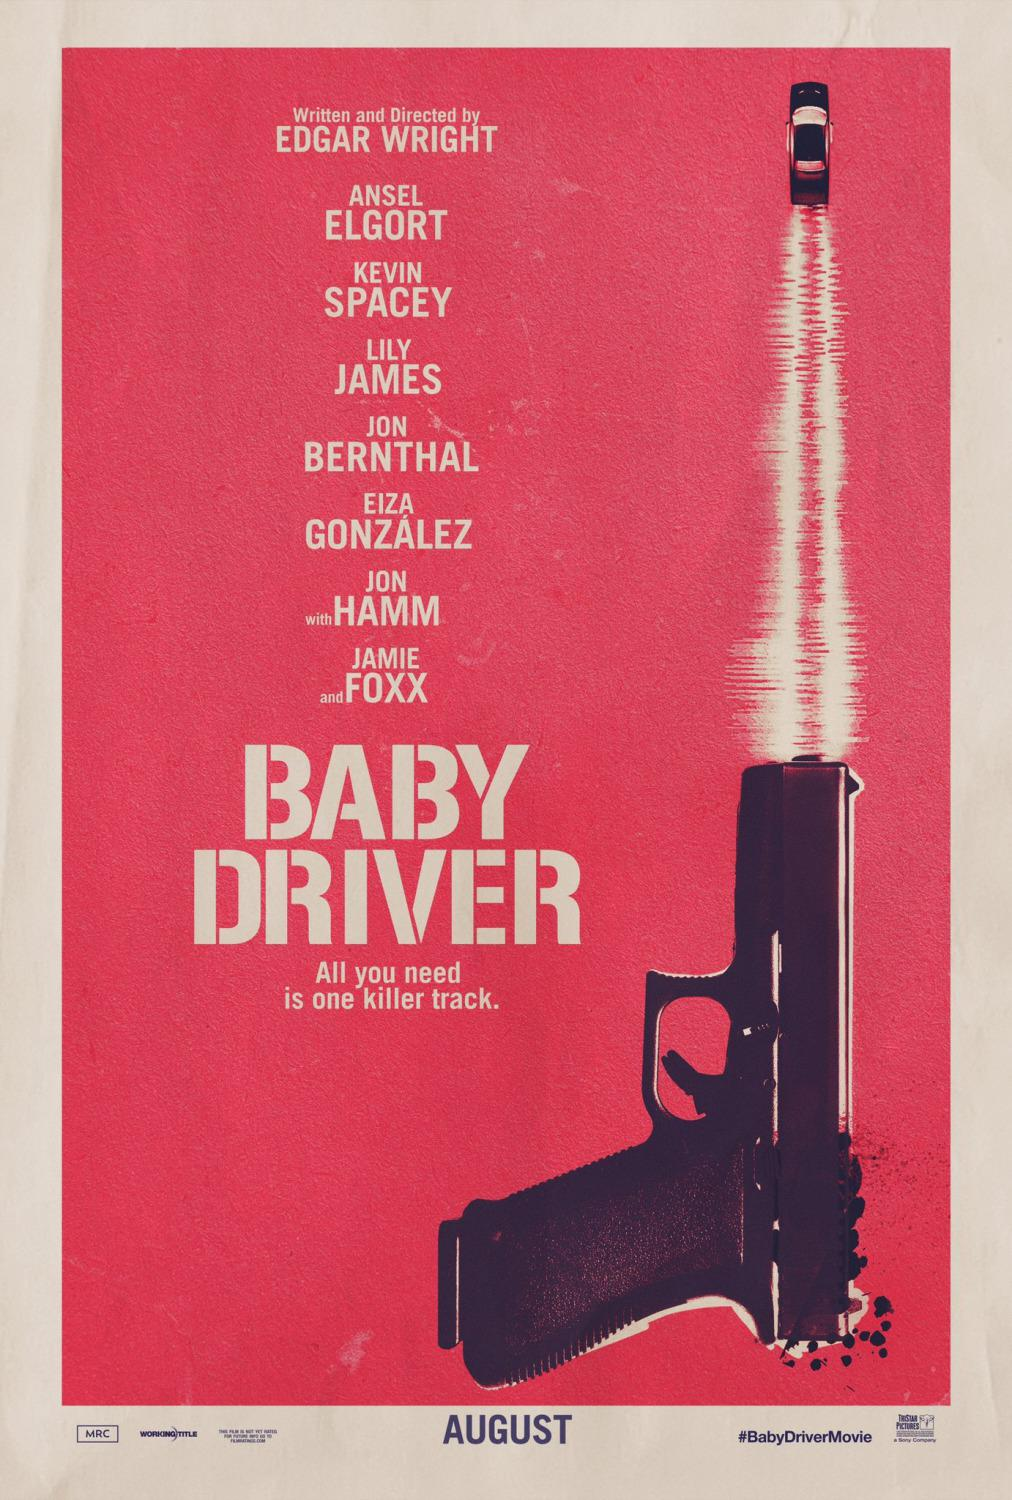 Baby Driver - film poster